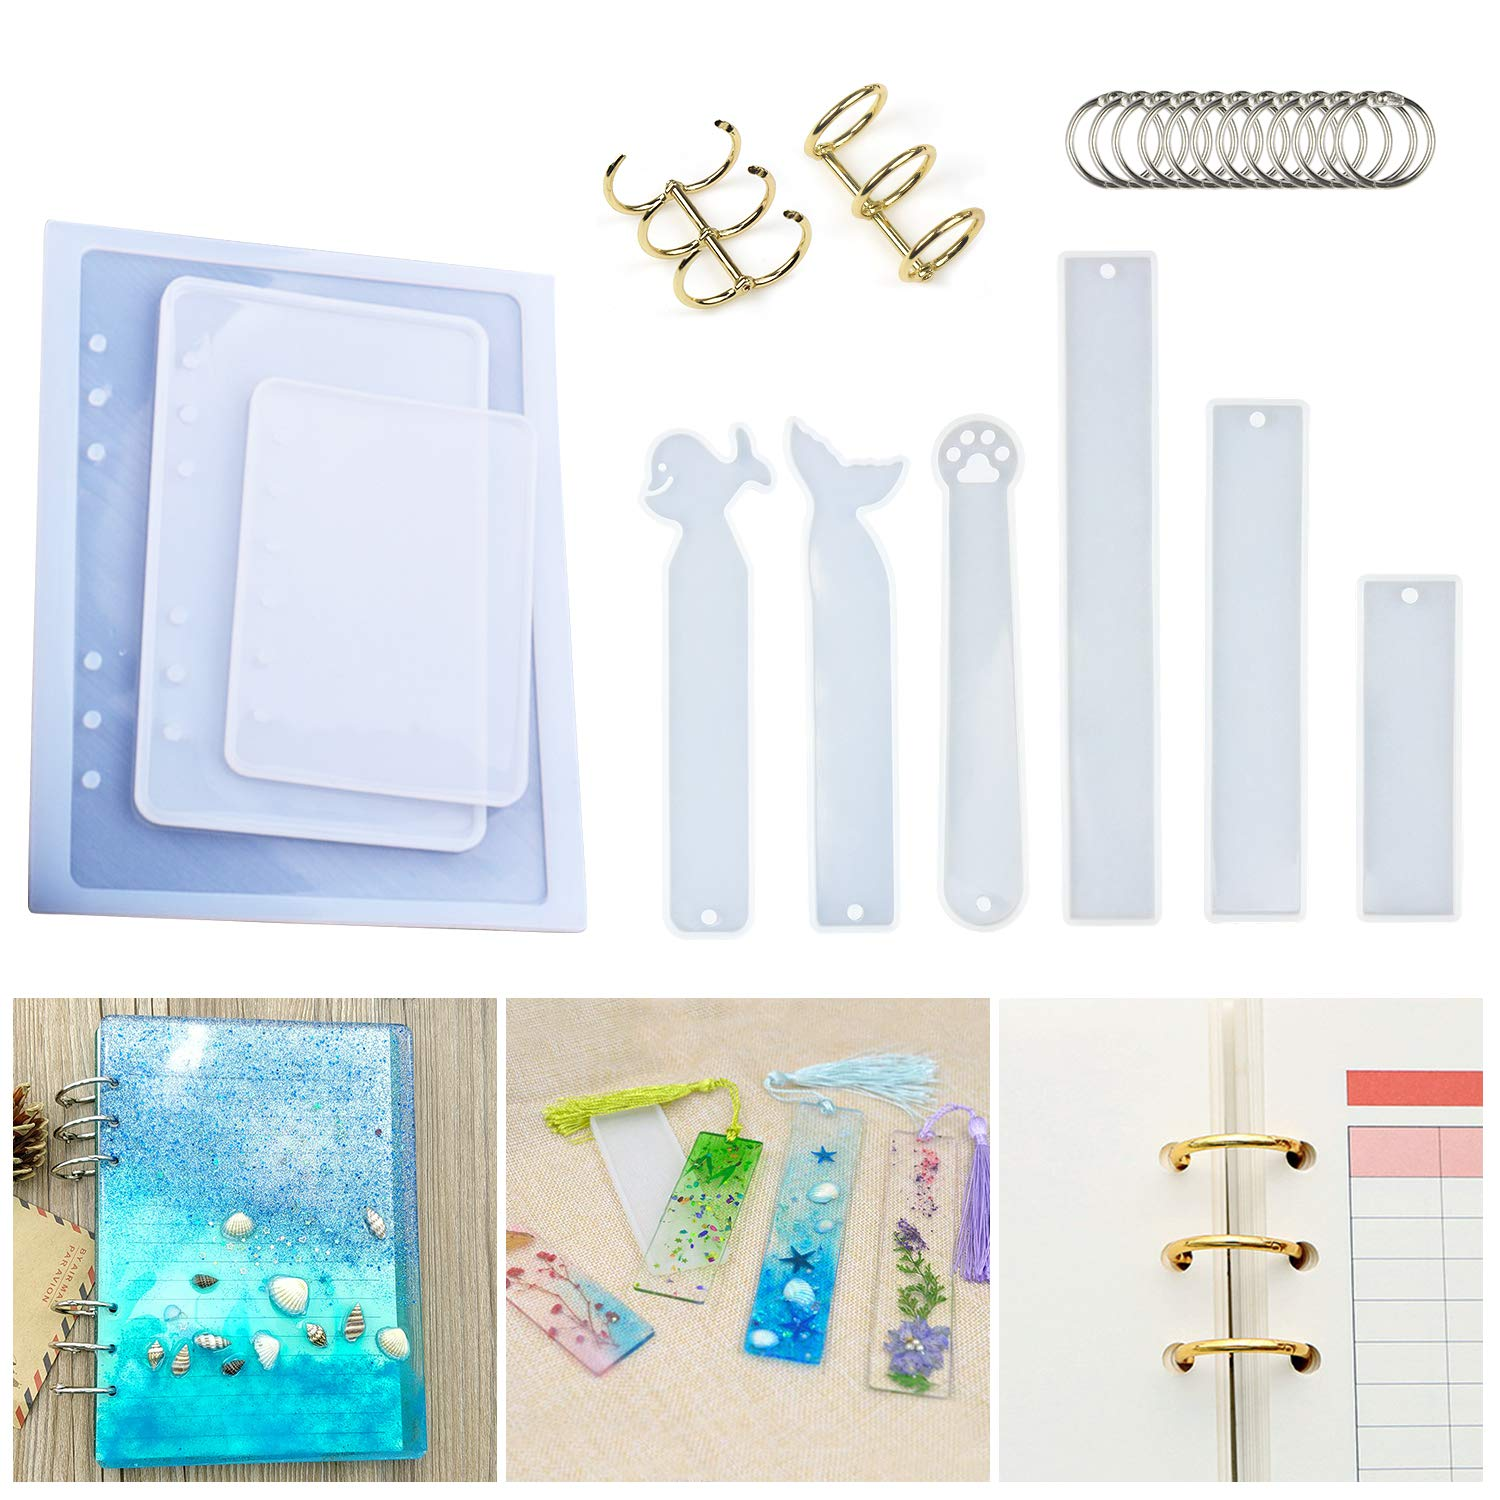 Resin Casting Molds for Notebook Cover A5 A6 A7, Silicone Bookmark Resin Mold 6PCS, Silicone Notebook Cover Clear Casting Epoxy Resin Molds with 14PCS Book Rings for Epoxy Resin Jewelry DIY Fans E4ulife